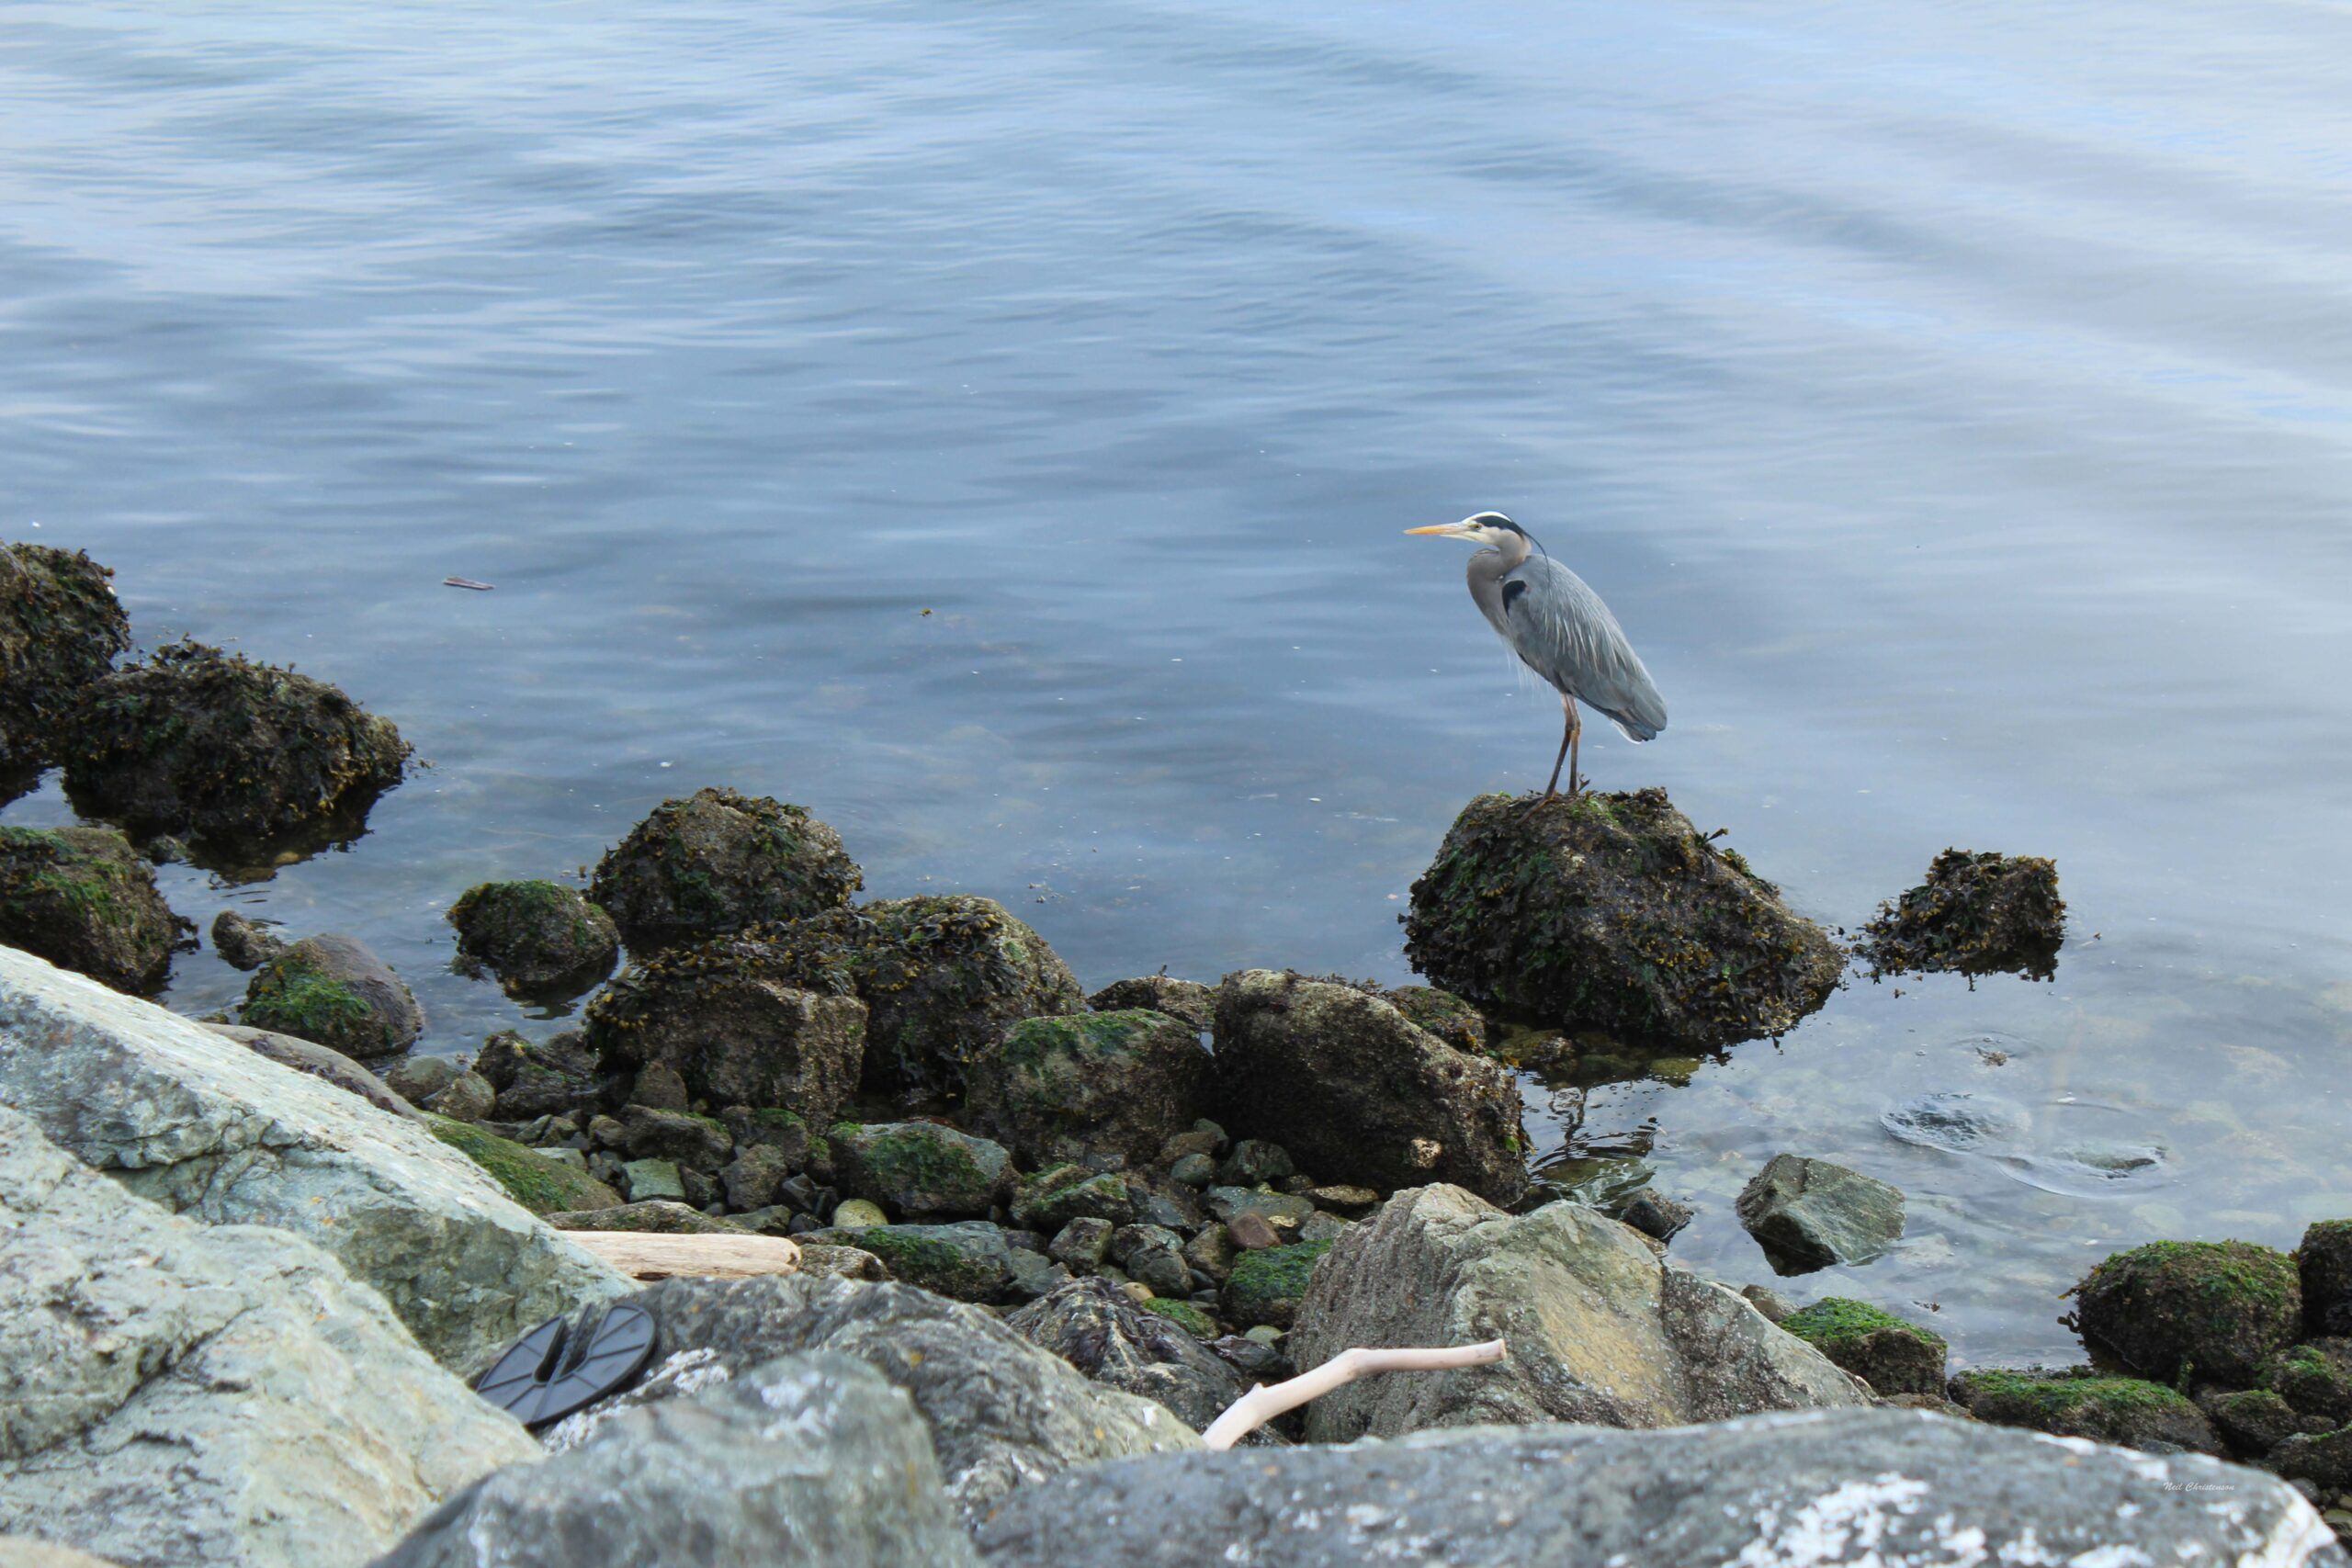 A heron standing on a rock in Keystone Harbor on Whidbey Island.